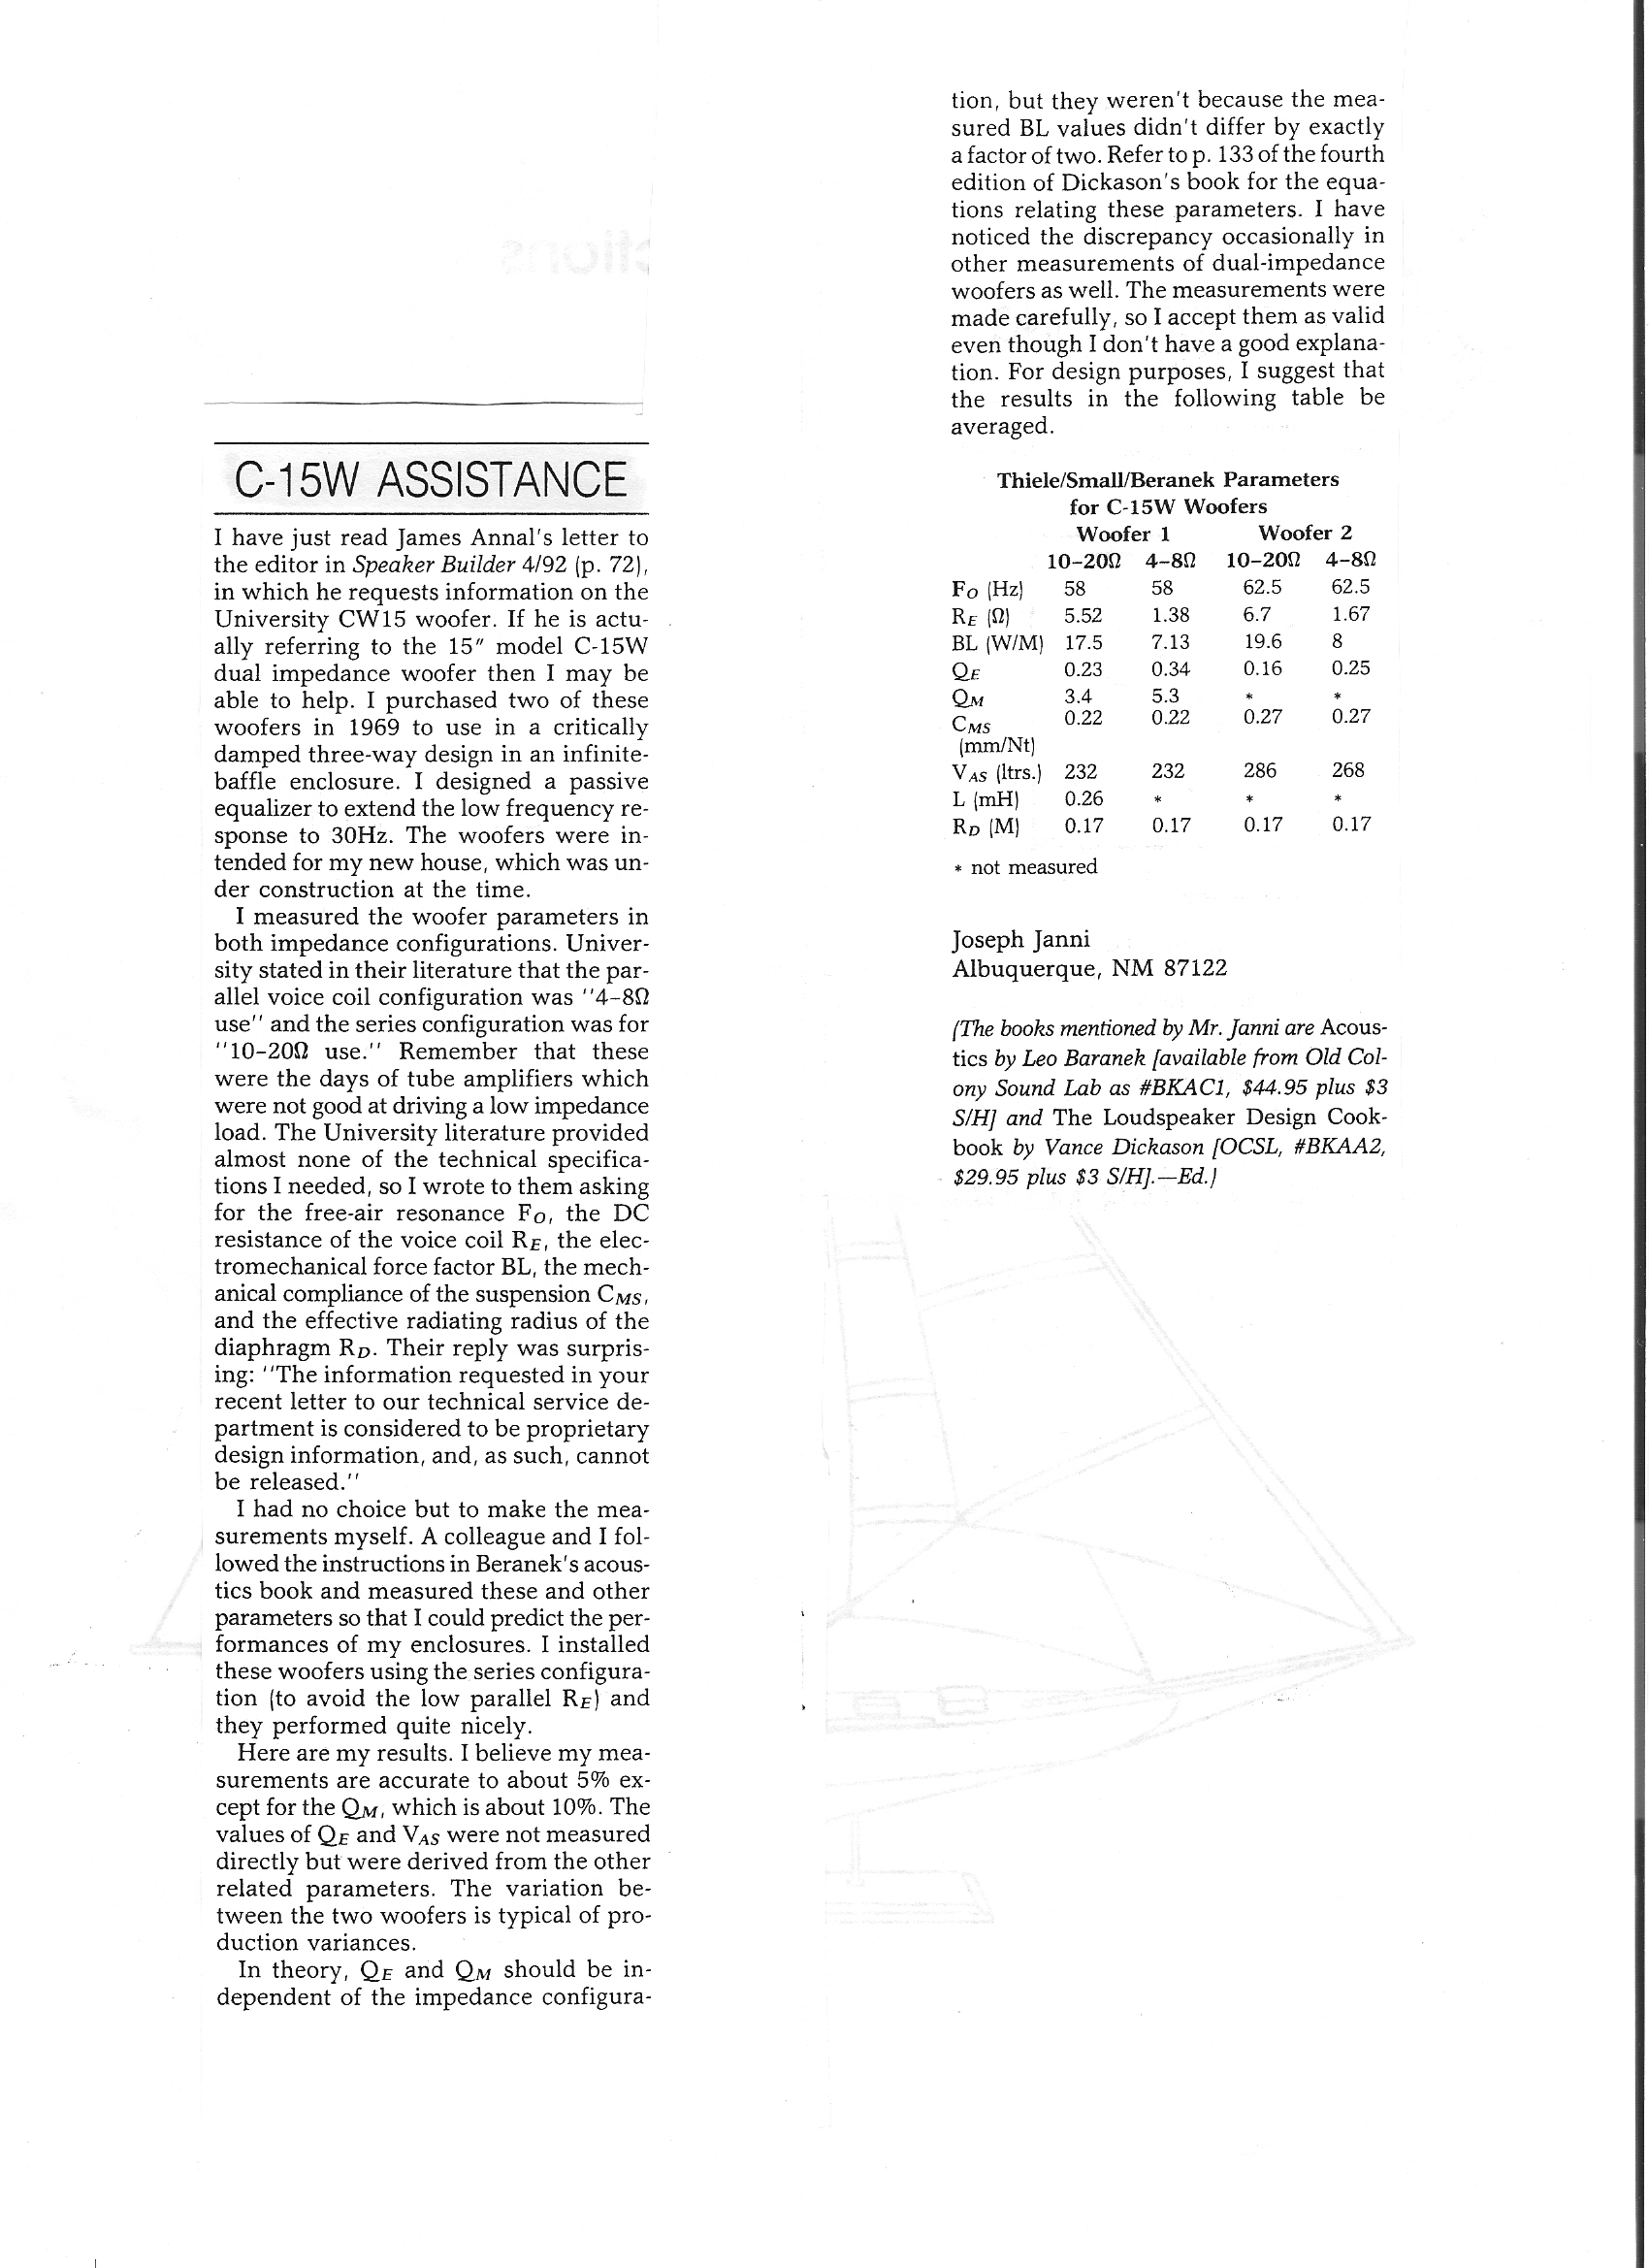 Thiele Small Parameters For University C15w